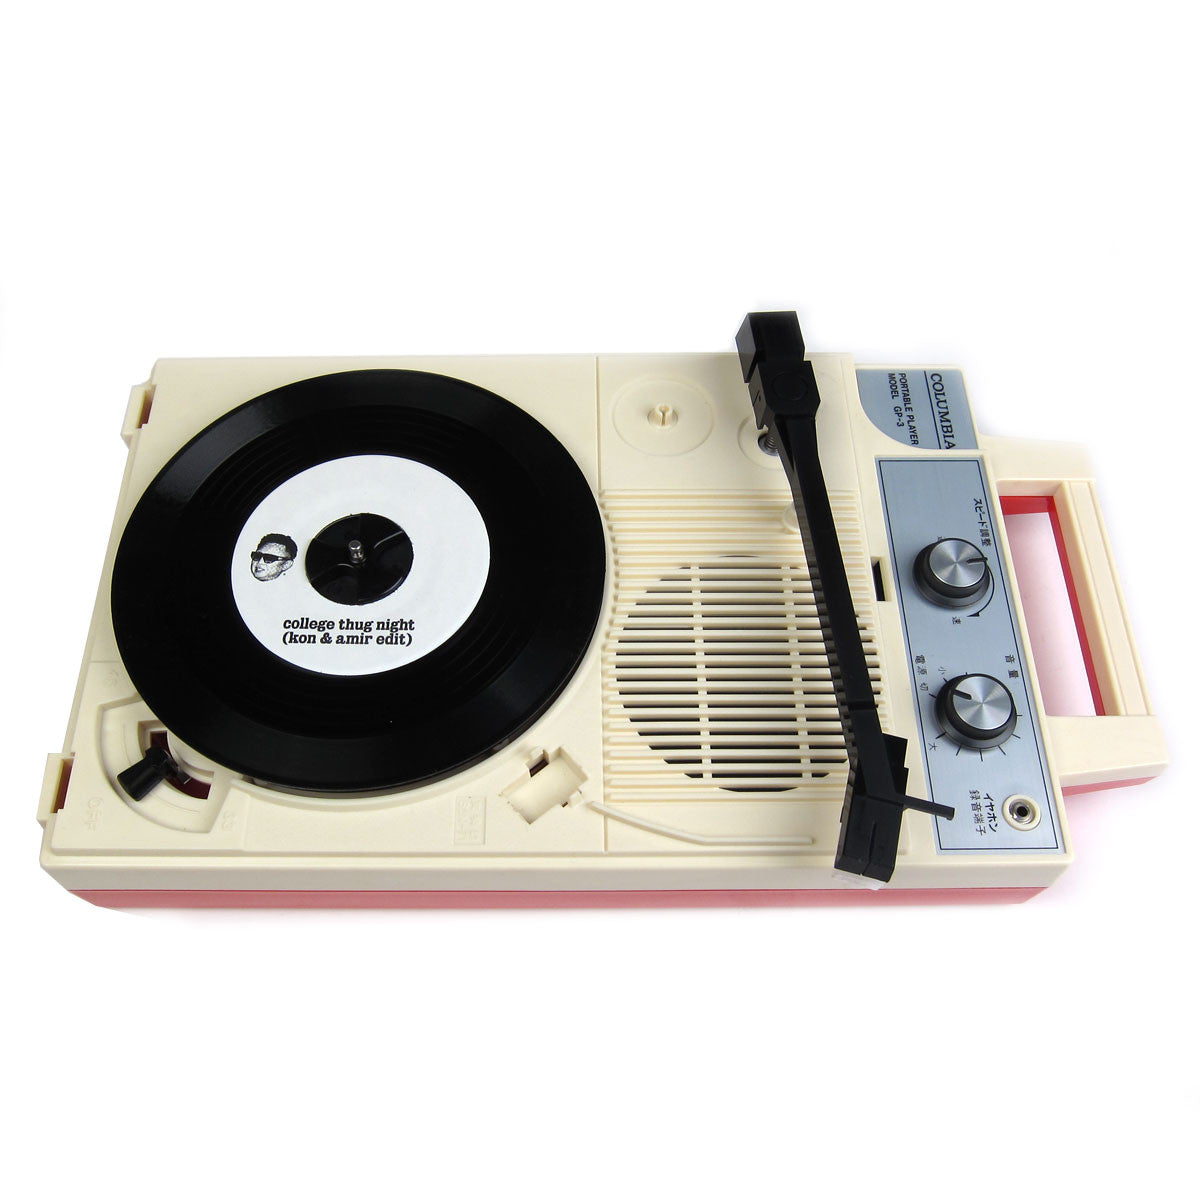 Columbia: GP3 Portable Turntable - Japan Import / Used record